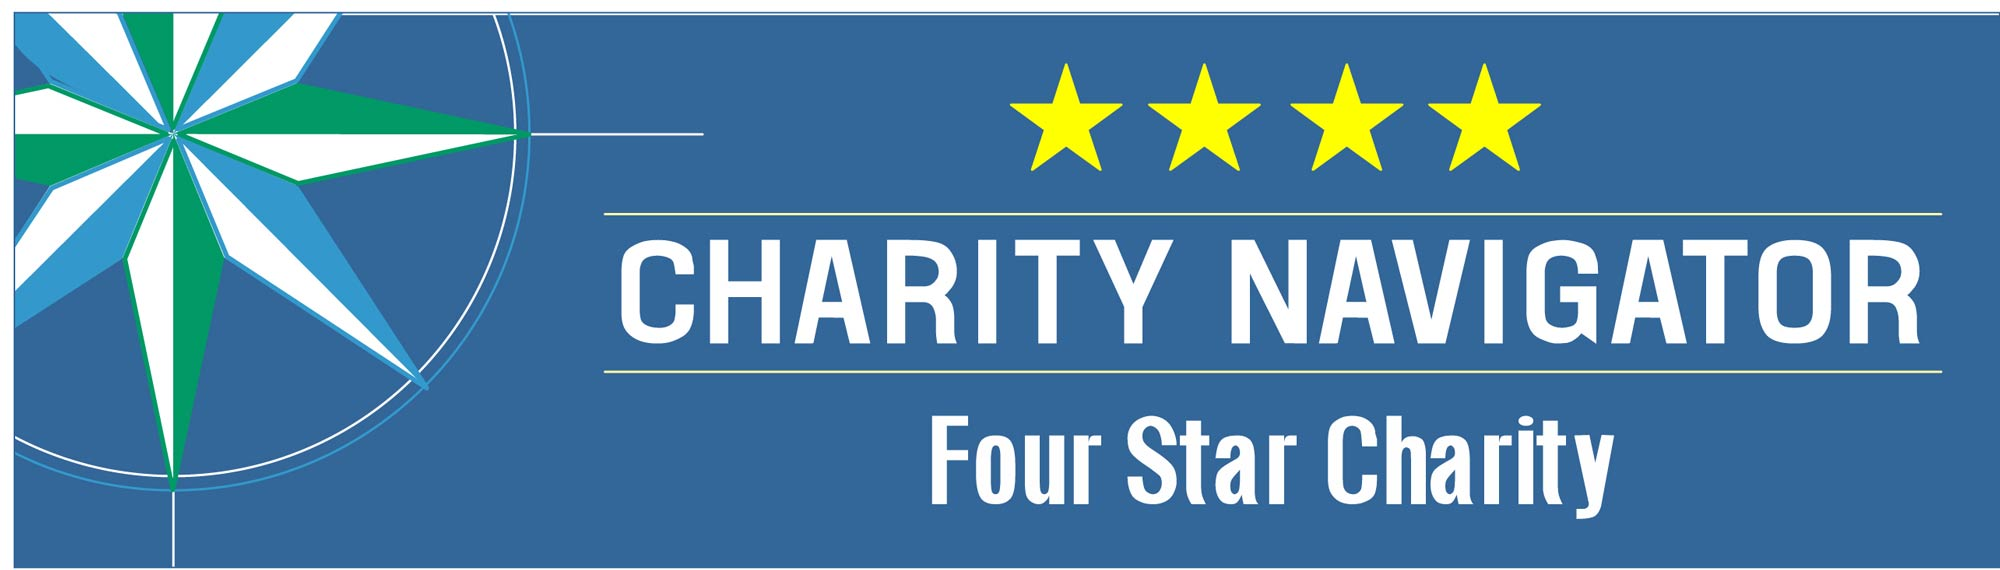 IMF rated 4 stars from charity navigator